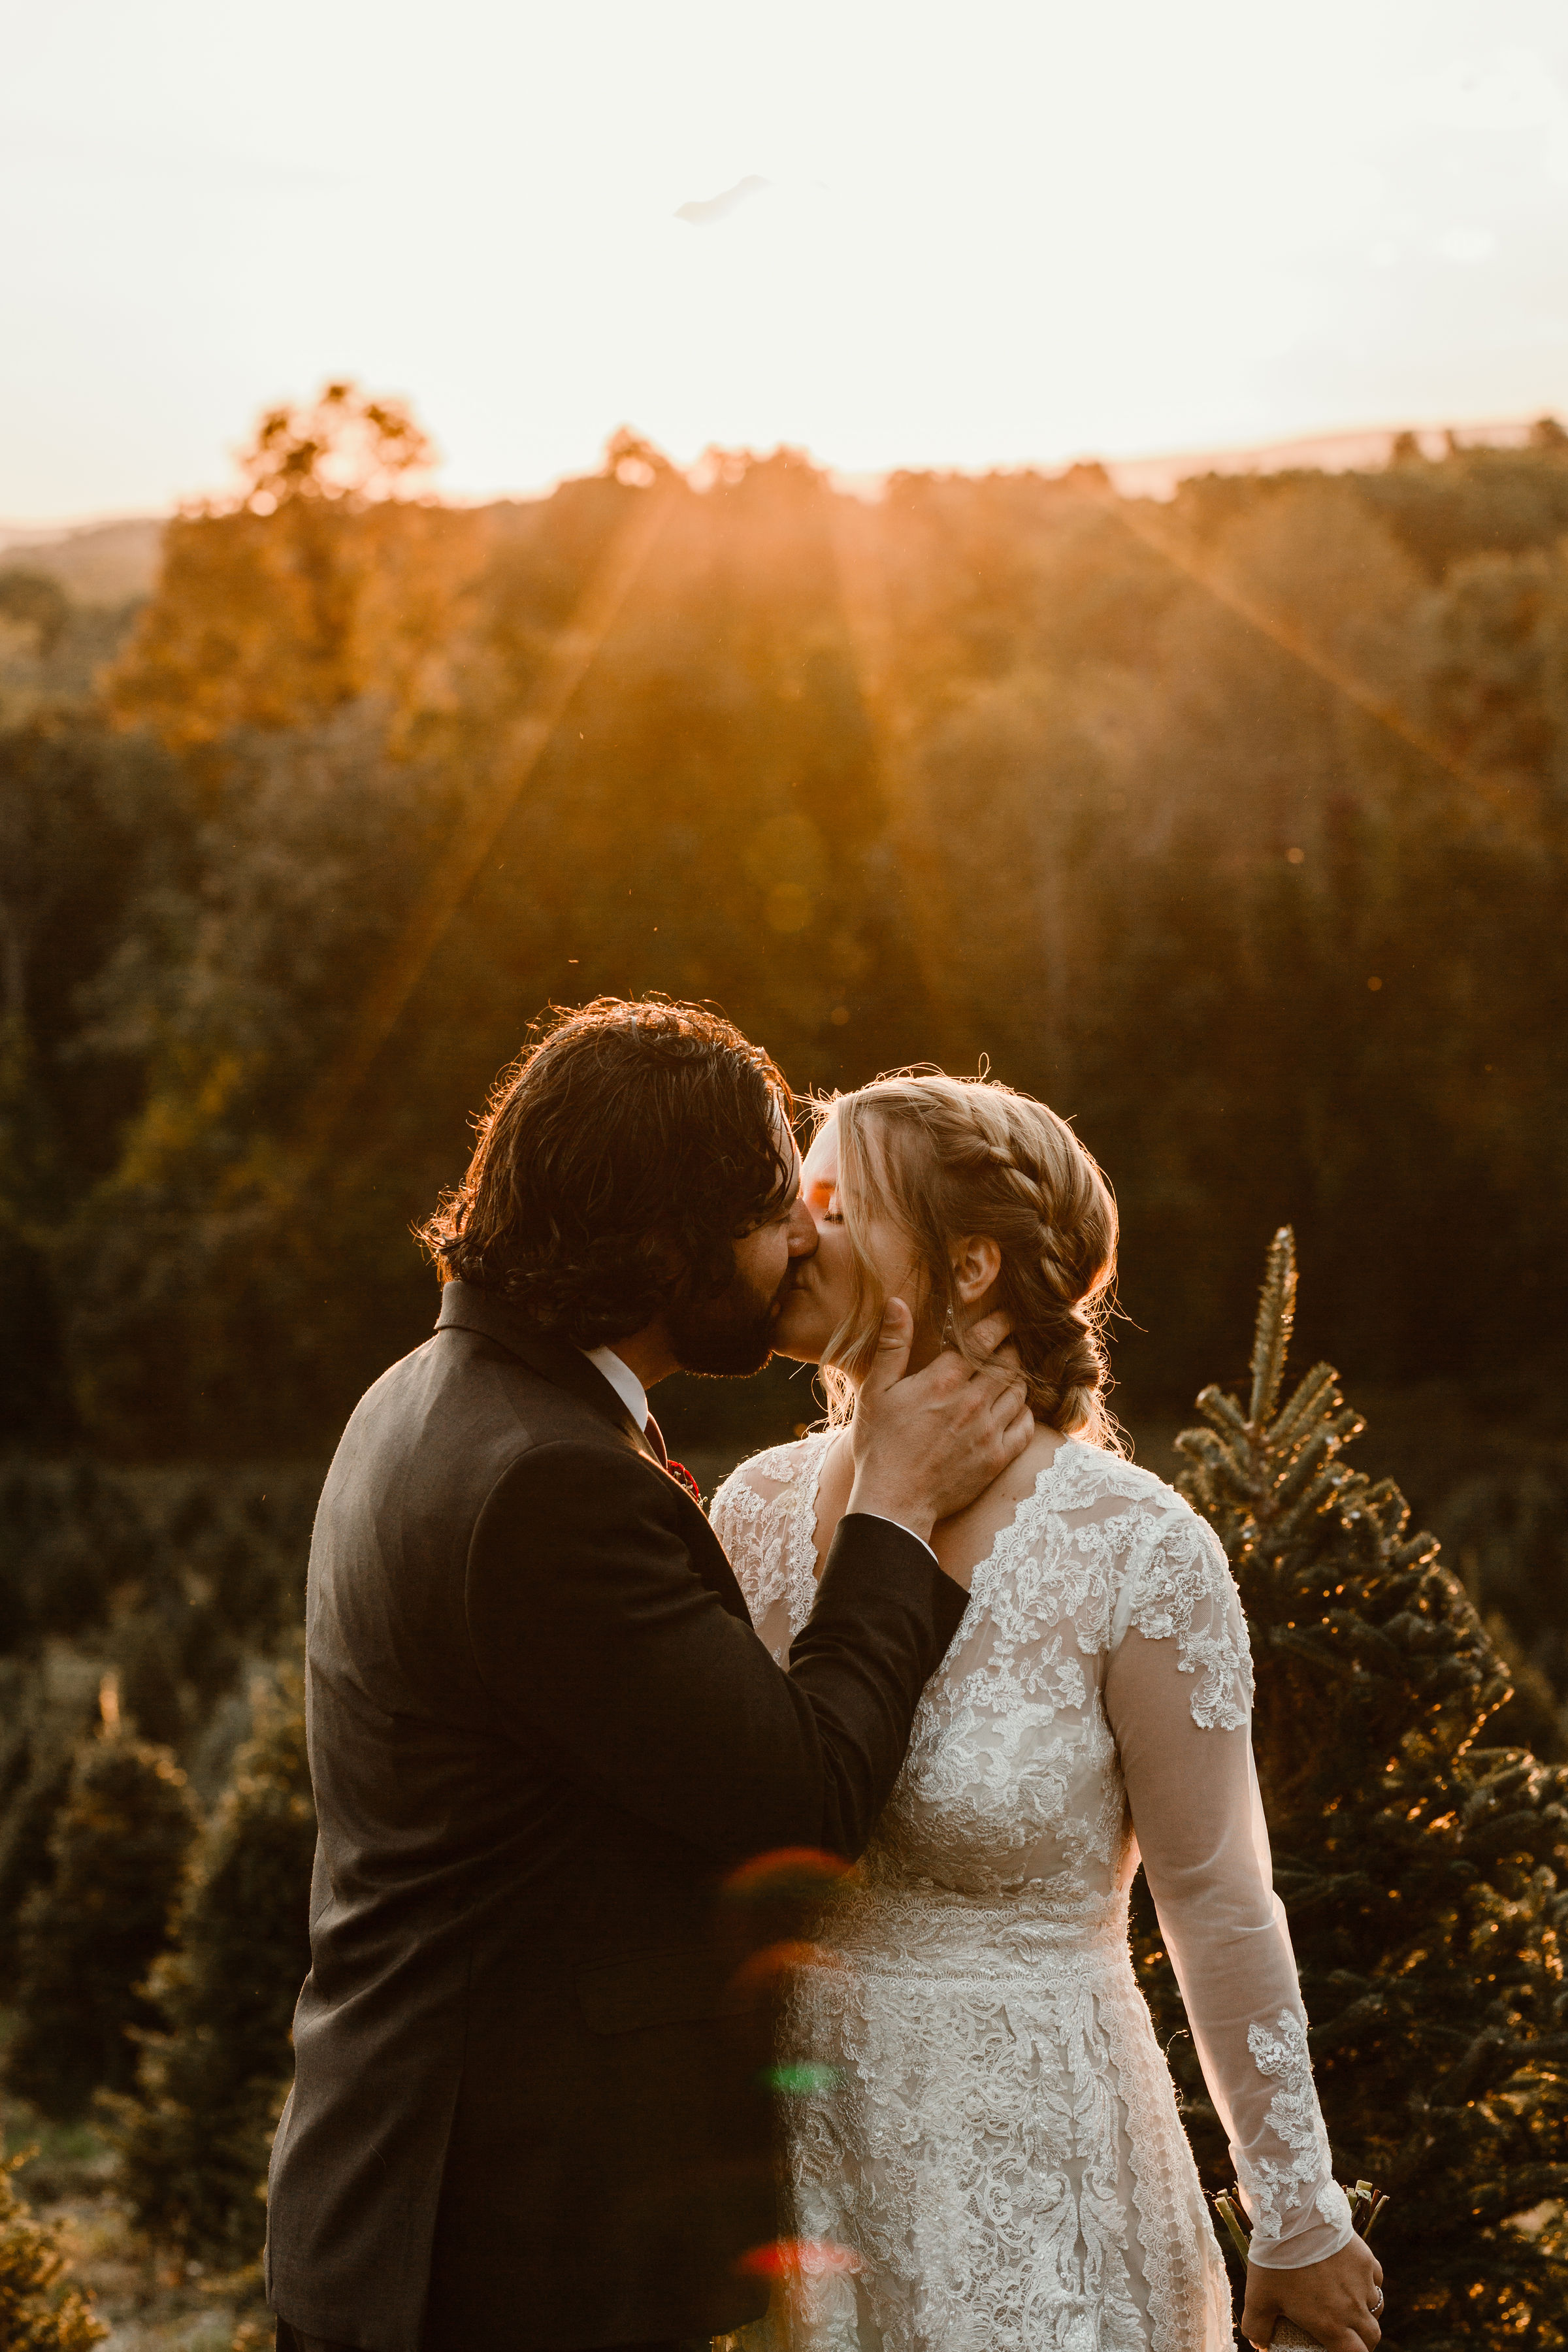 young-love-media-rustic-fall-autumn-wedding-emmerich-tree-farm-hudson-valley-warwick-new-york-first-look-234.jpg